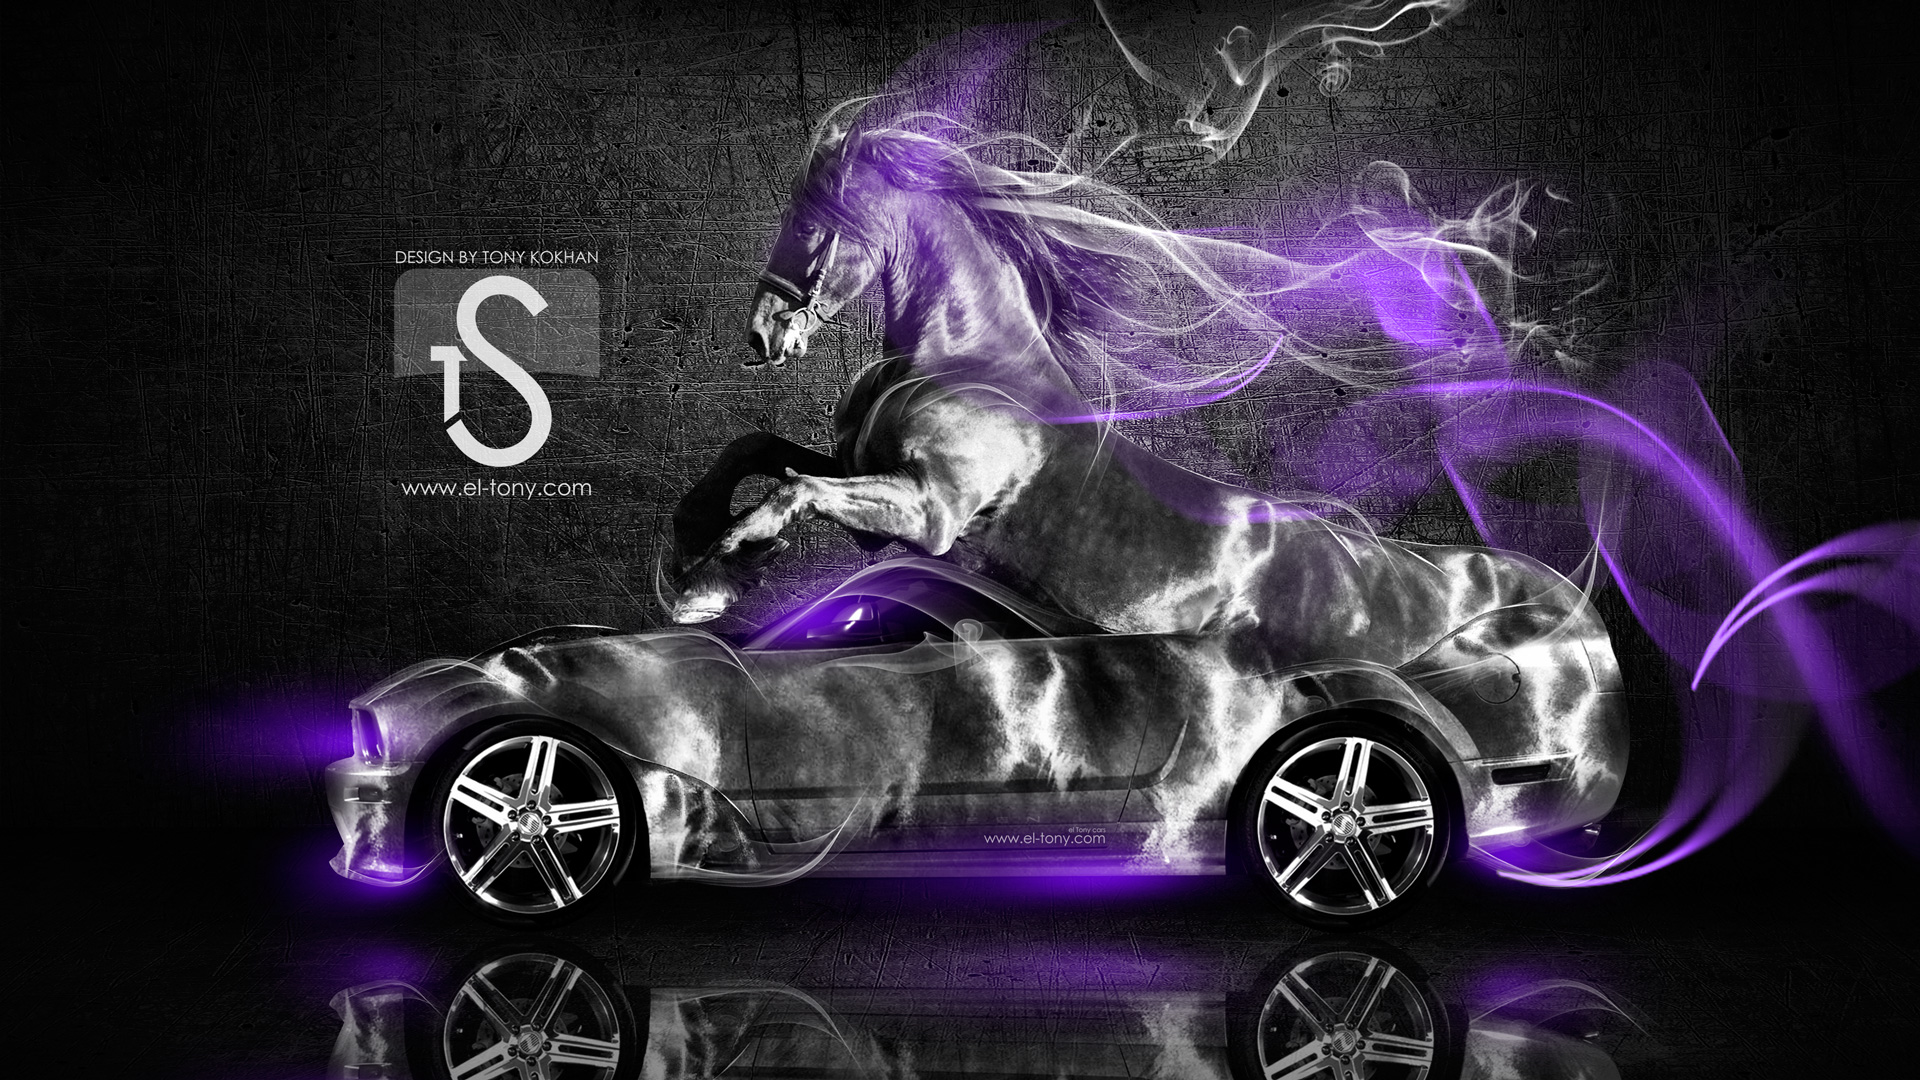 ford mustang gt fantasy horse smoke car 2014 - Mustang 2014 Purple